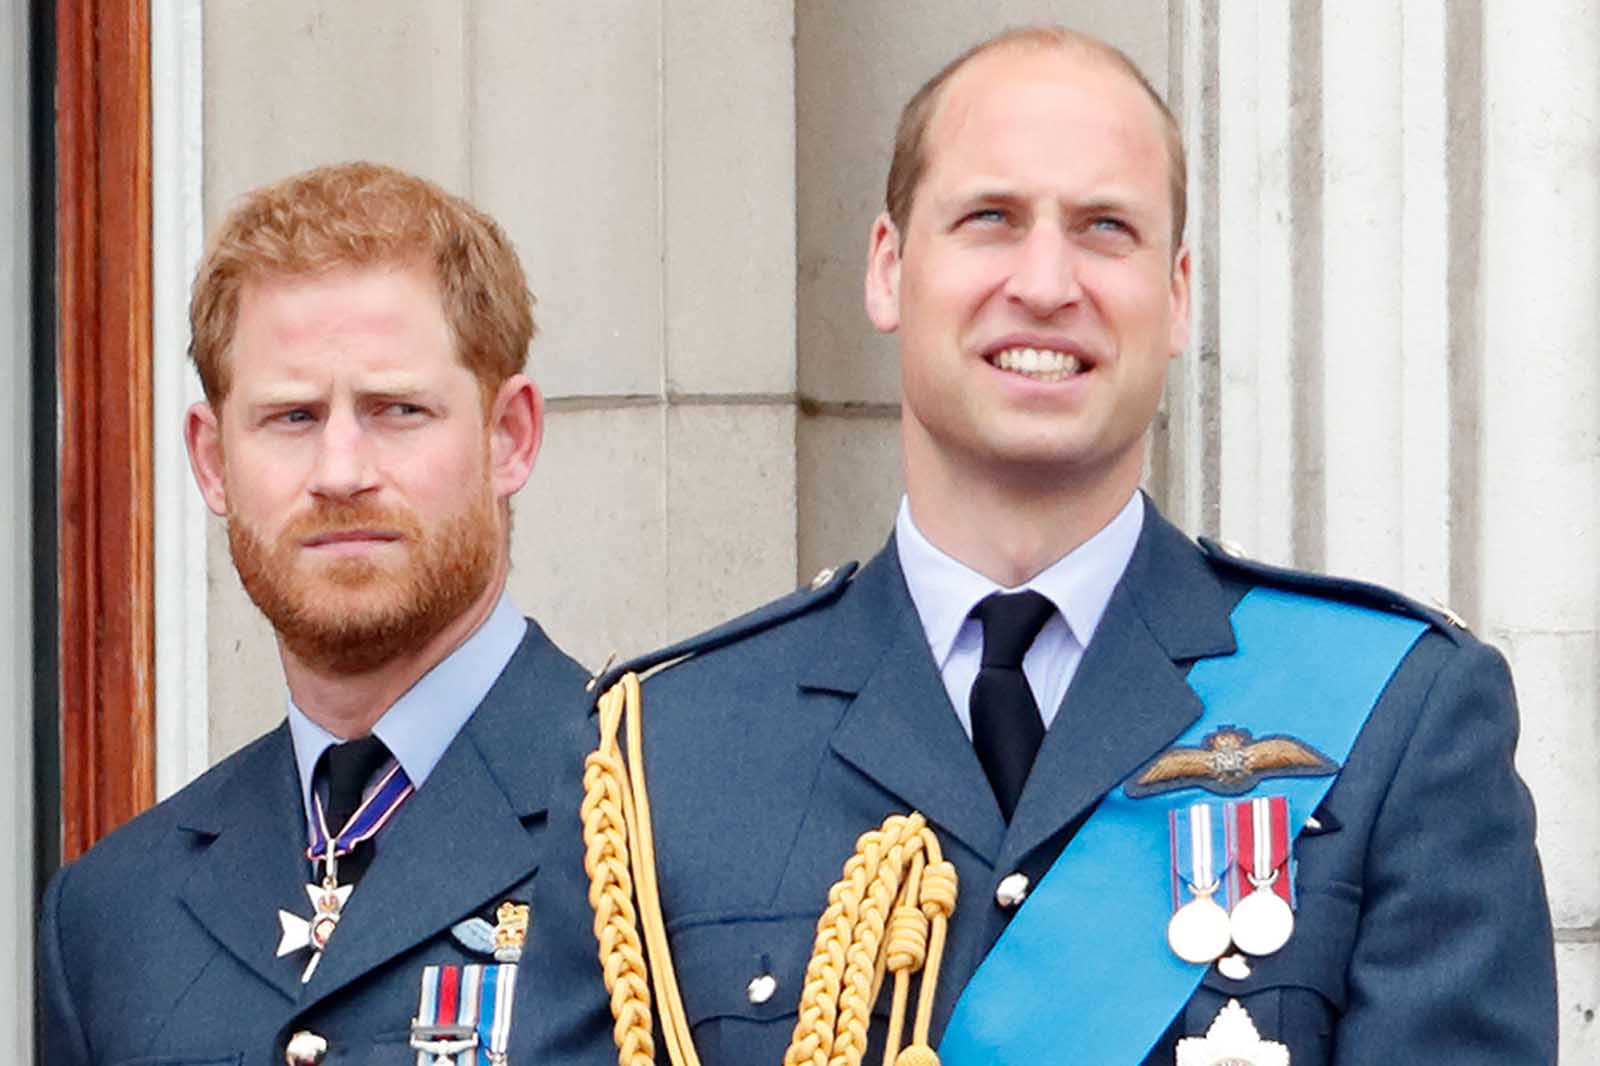 """A new book from a """"royal expert"""" is theorizing a massive rift between Prince William and Harry. But how true is this so-called """"rift""""?"""